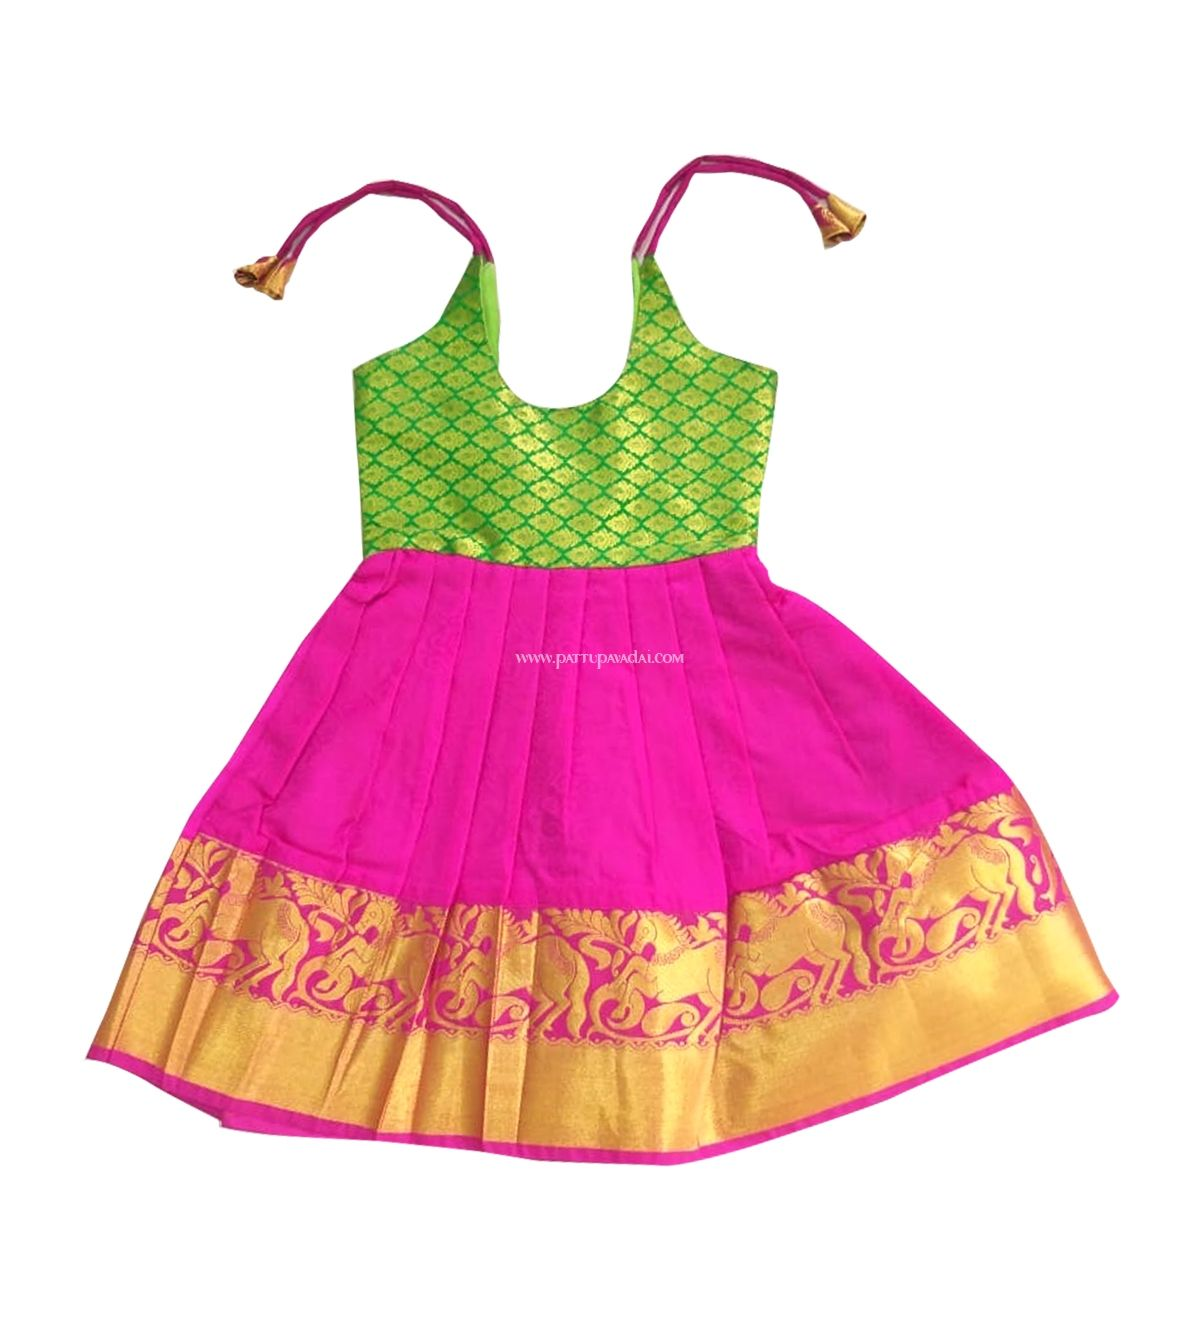 1c51177aa8b9a Traditional pure silk frock for 1-year kids in attractive pink and green  color. www.pattupavadai.com/product/pure-silk-kids-frock-pink-and-green  #pattufrock ...